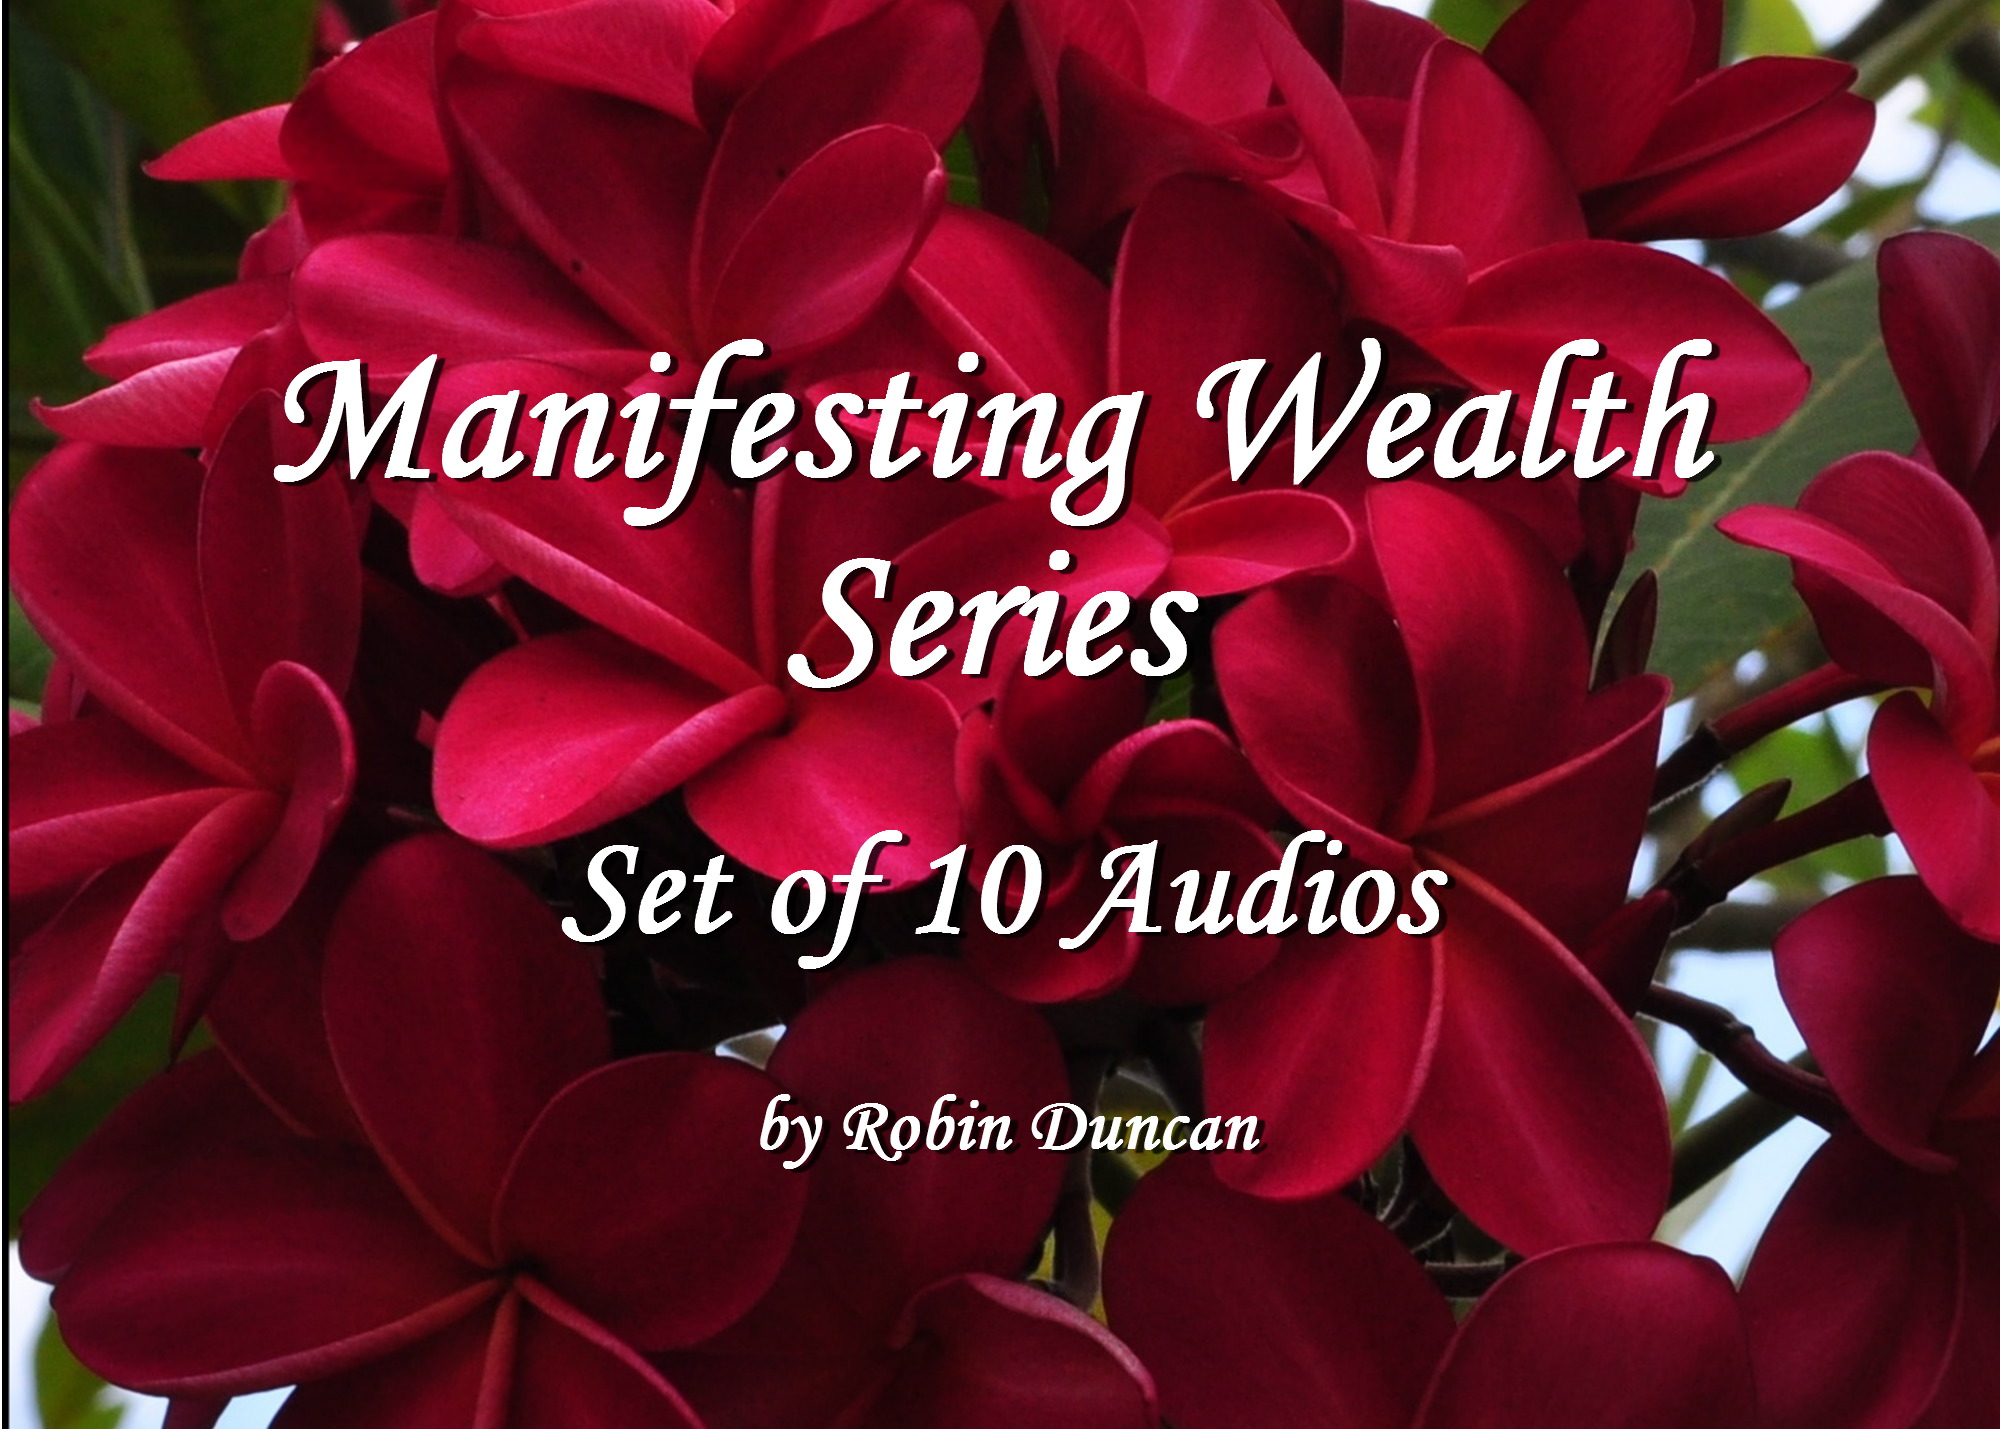 Manifesting Wealth Series-10 Audio Set Manifesting Wealth, Help with Money, Prayer about Money, Guided Meditation on Money